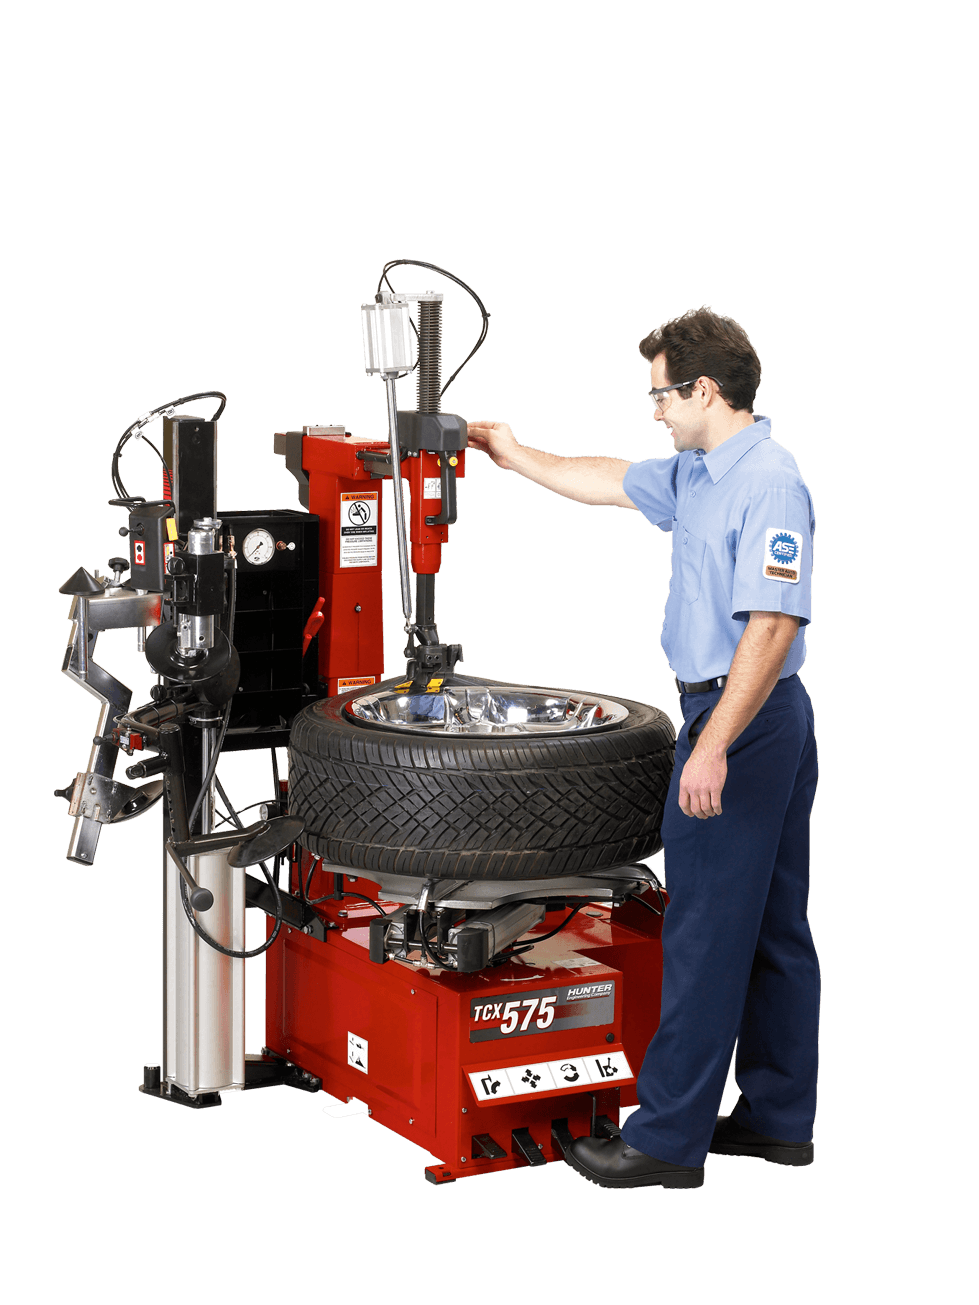 changing vehicle tires with TCX57